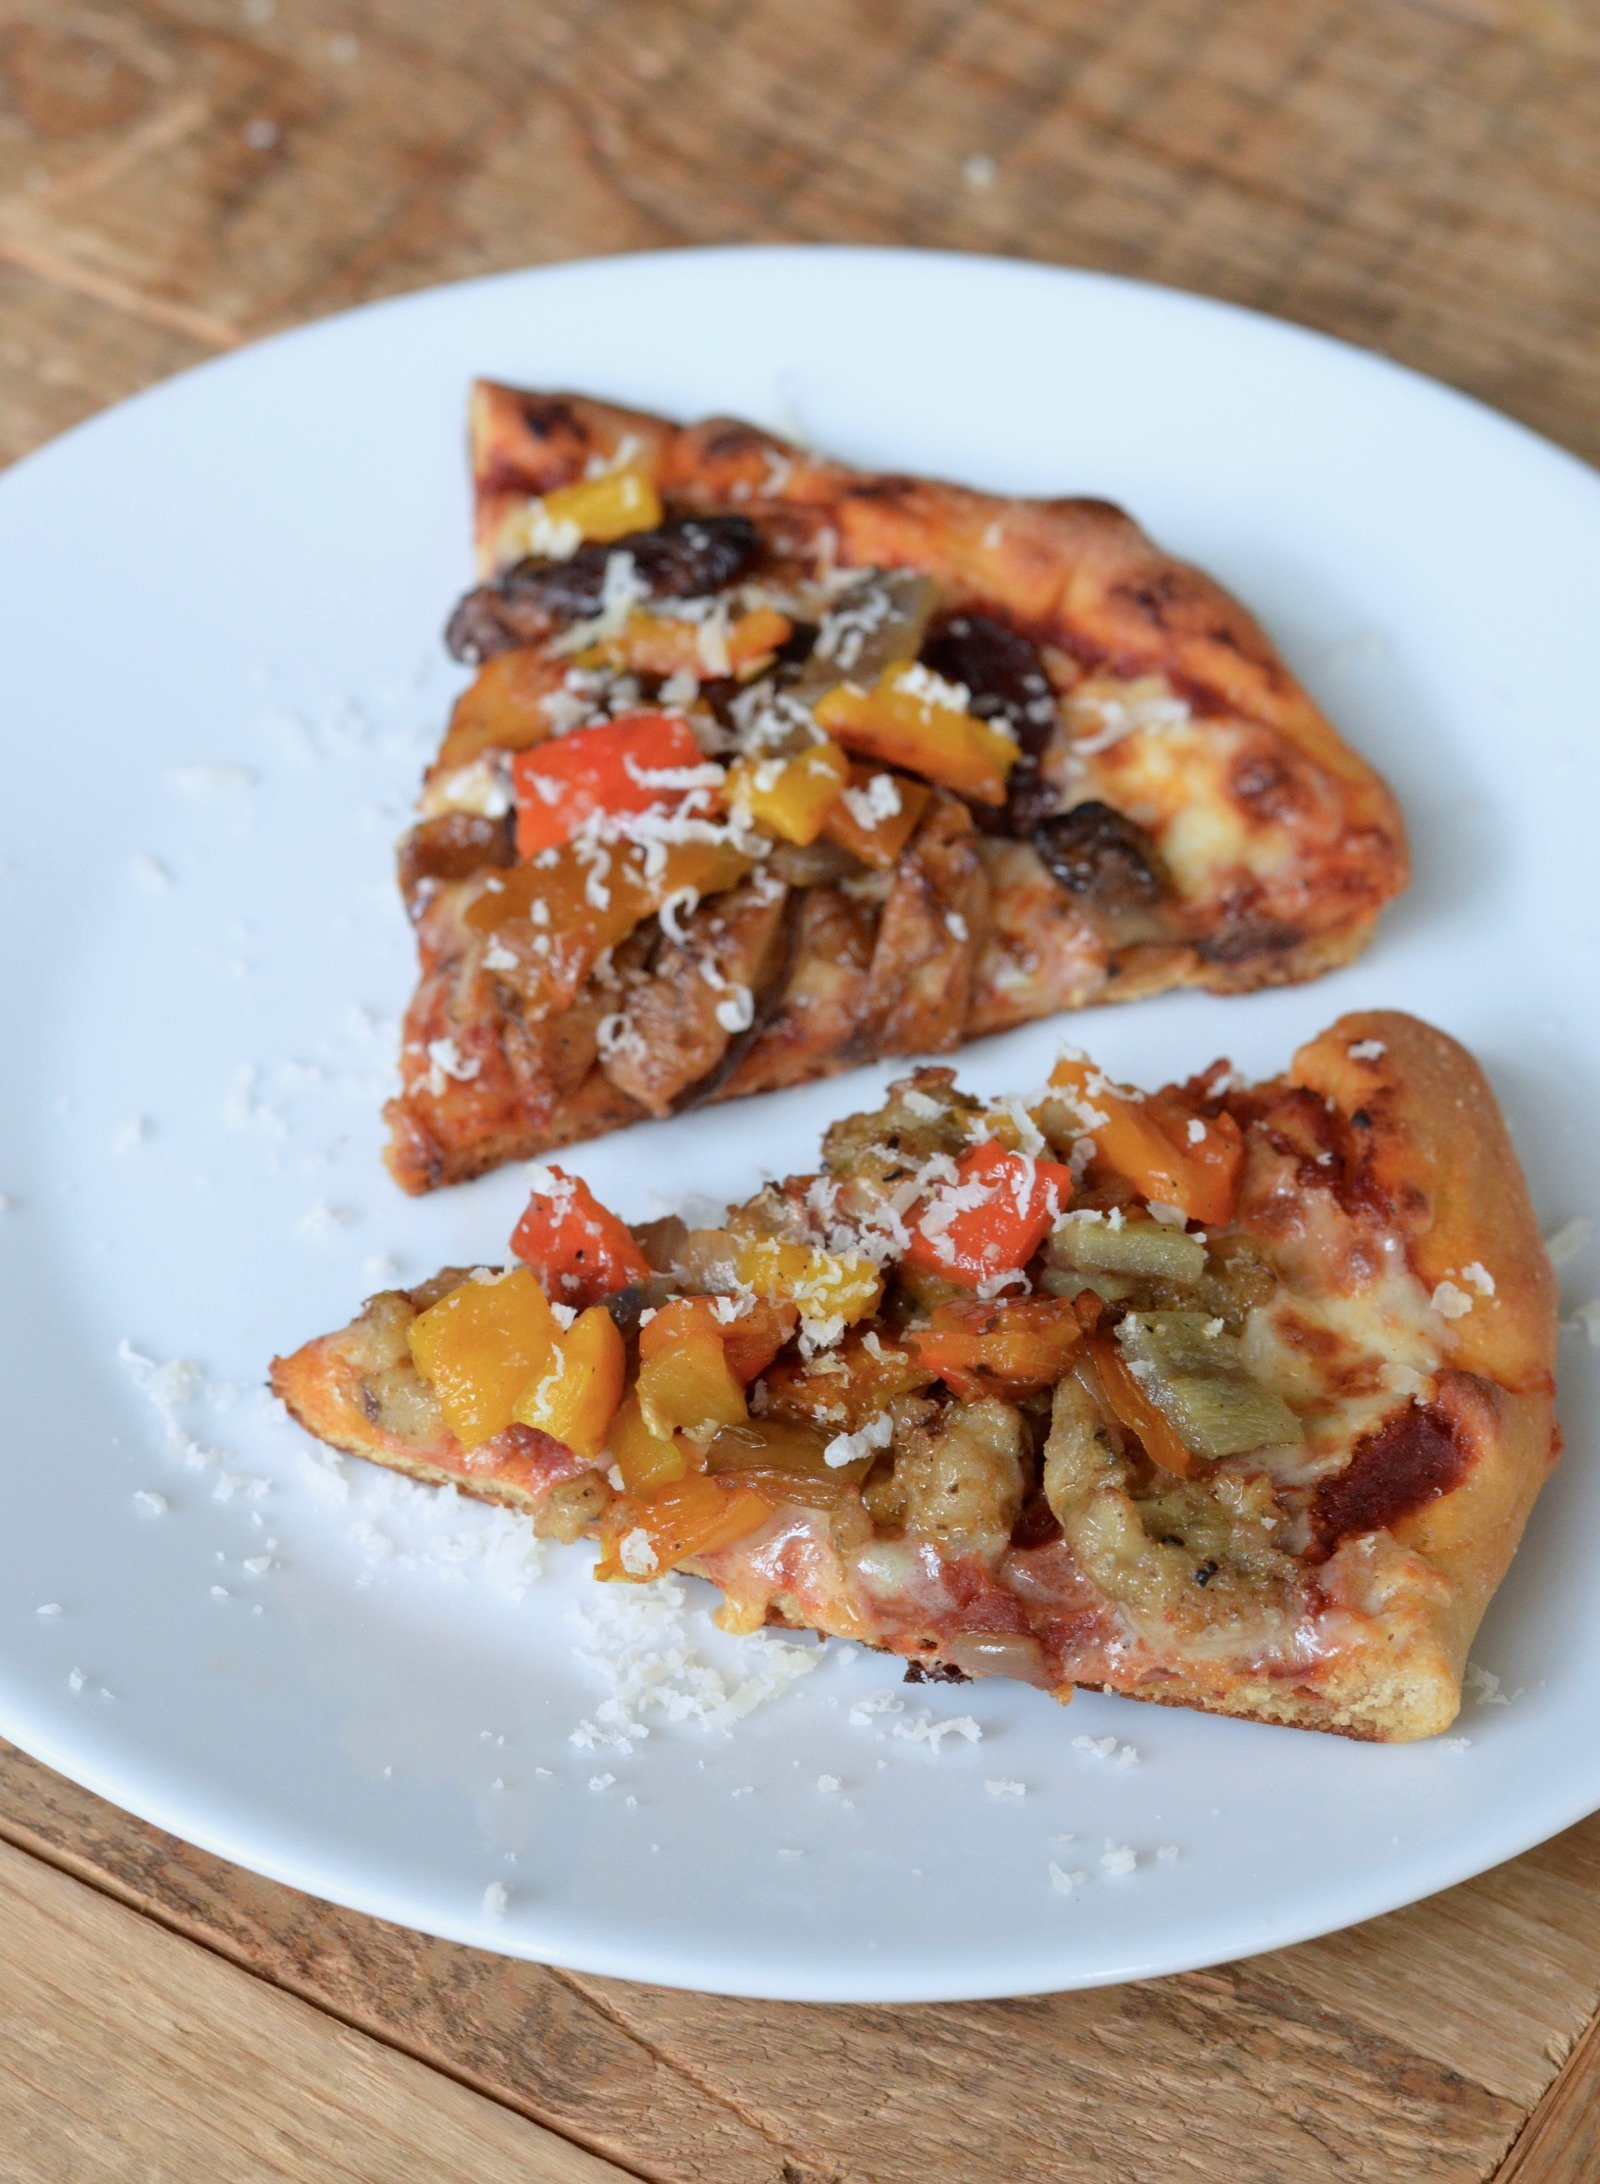 Roasted Bell Peppers diced and added to pizza topping